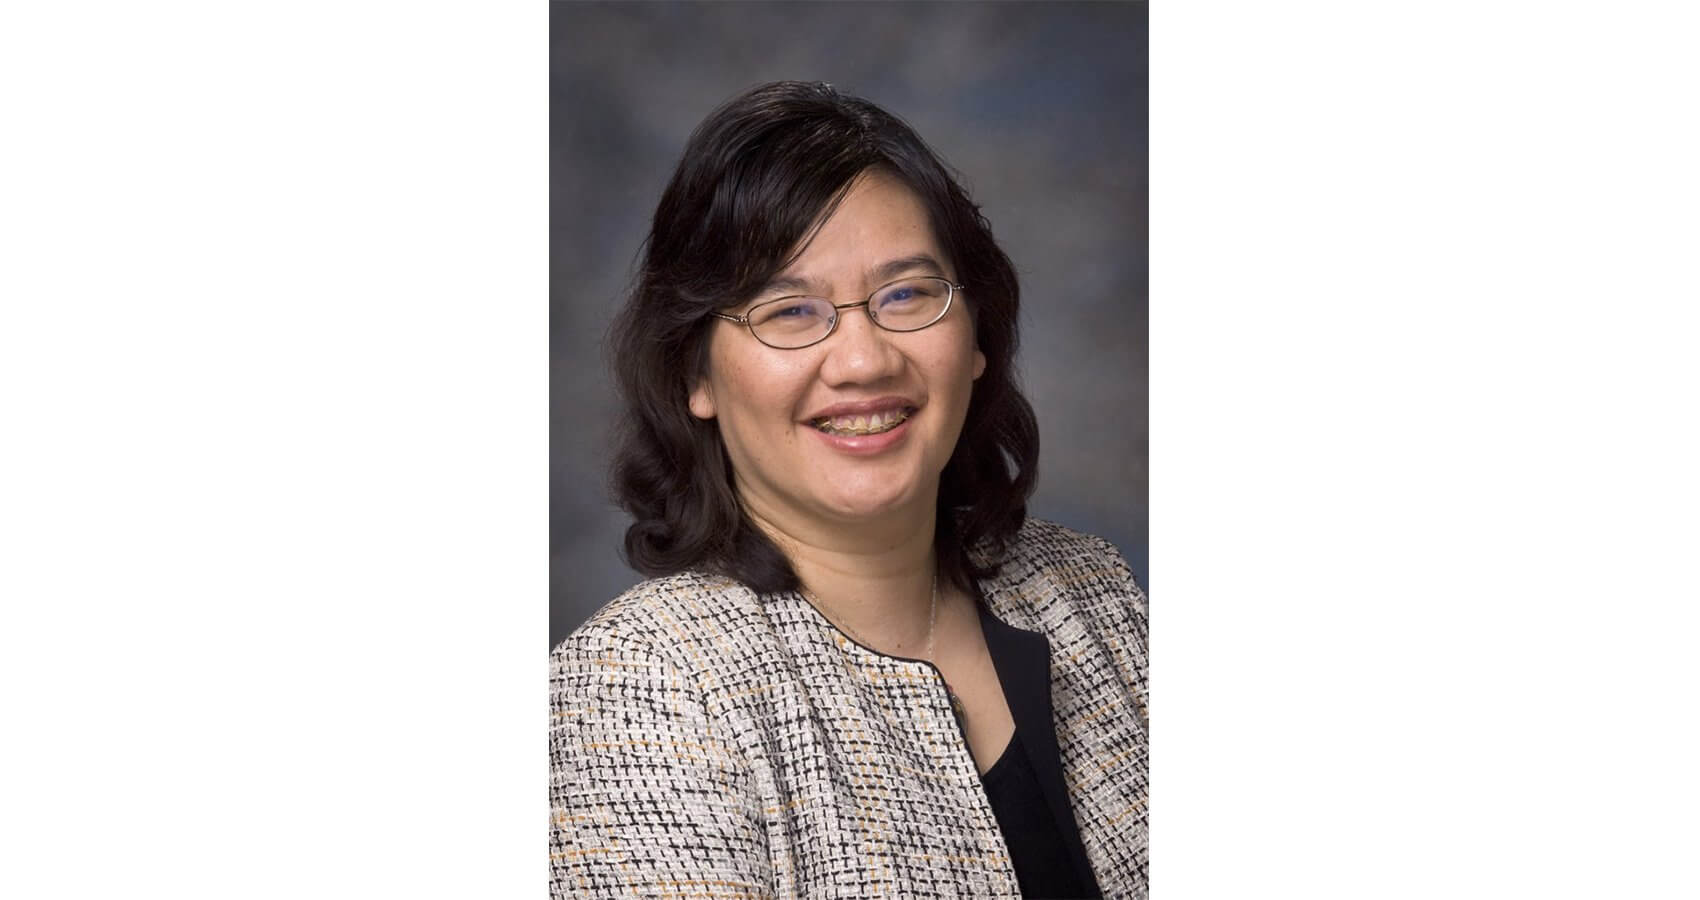 Xifeng Wu, M.D., Ph.D, professor of epidemiology, MD Anderson